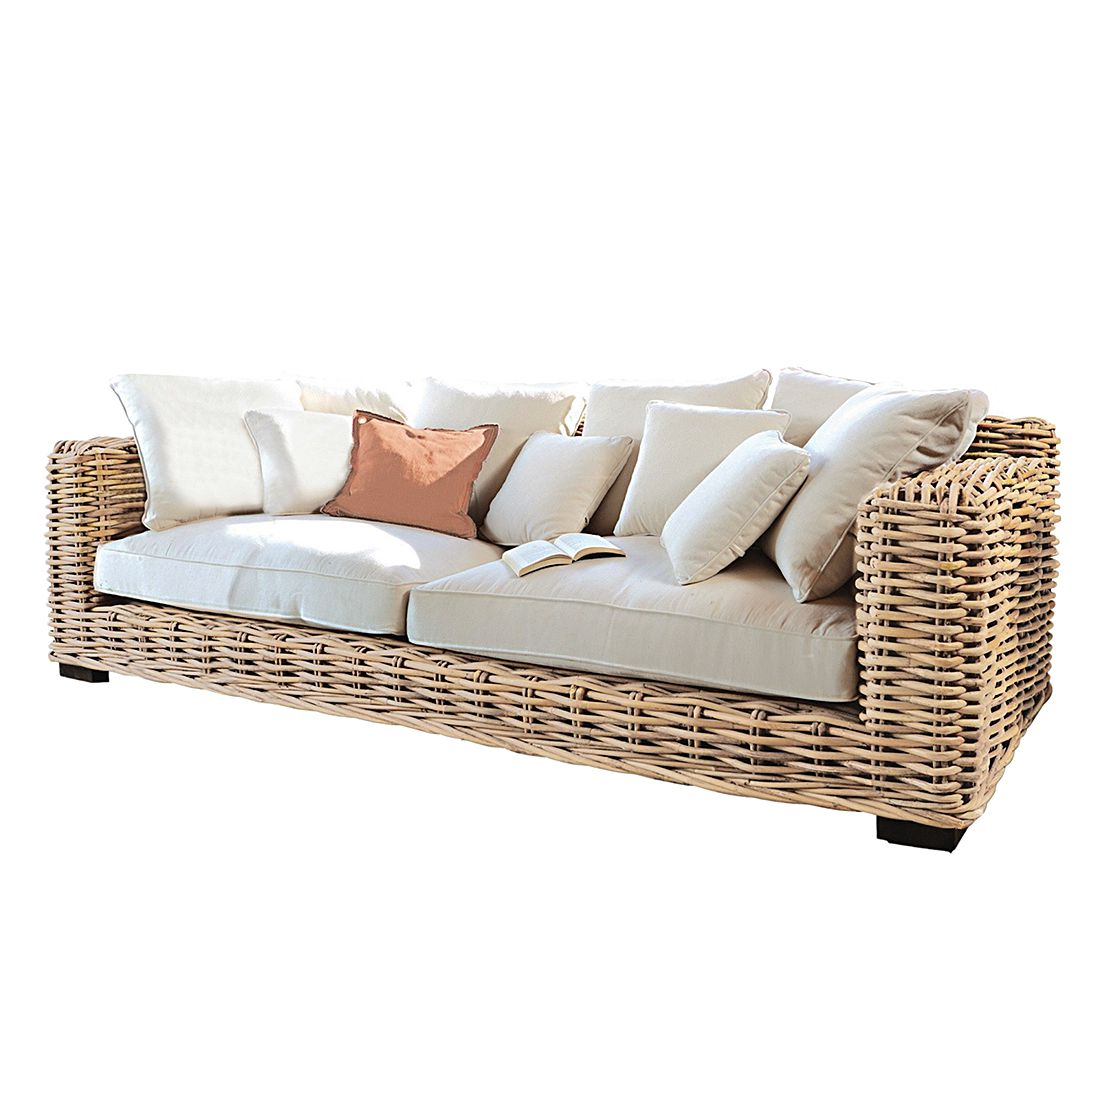 rattan h ngesessel mit gestell g nstig kaufen. Black Bedroom Furniture Sets. Home Design Ideas